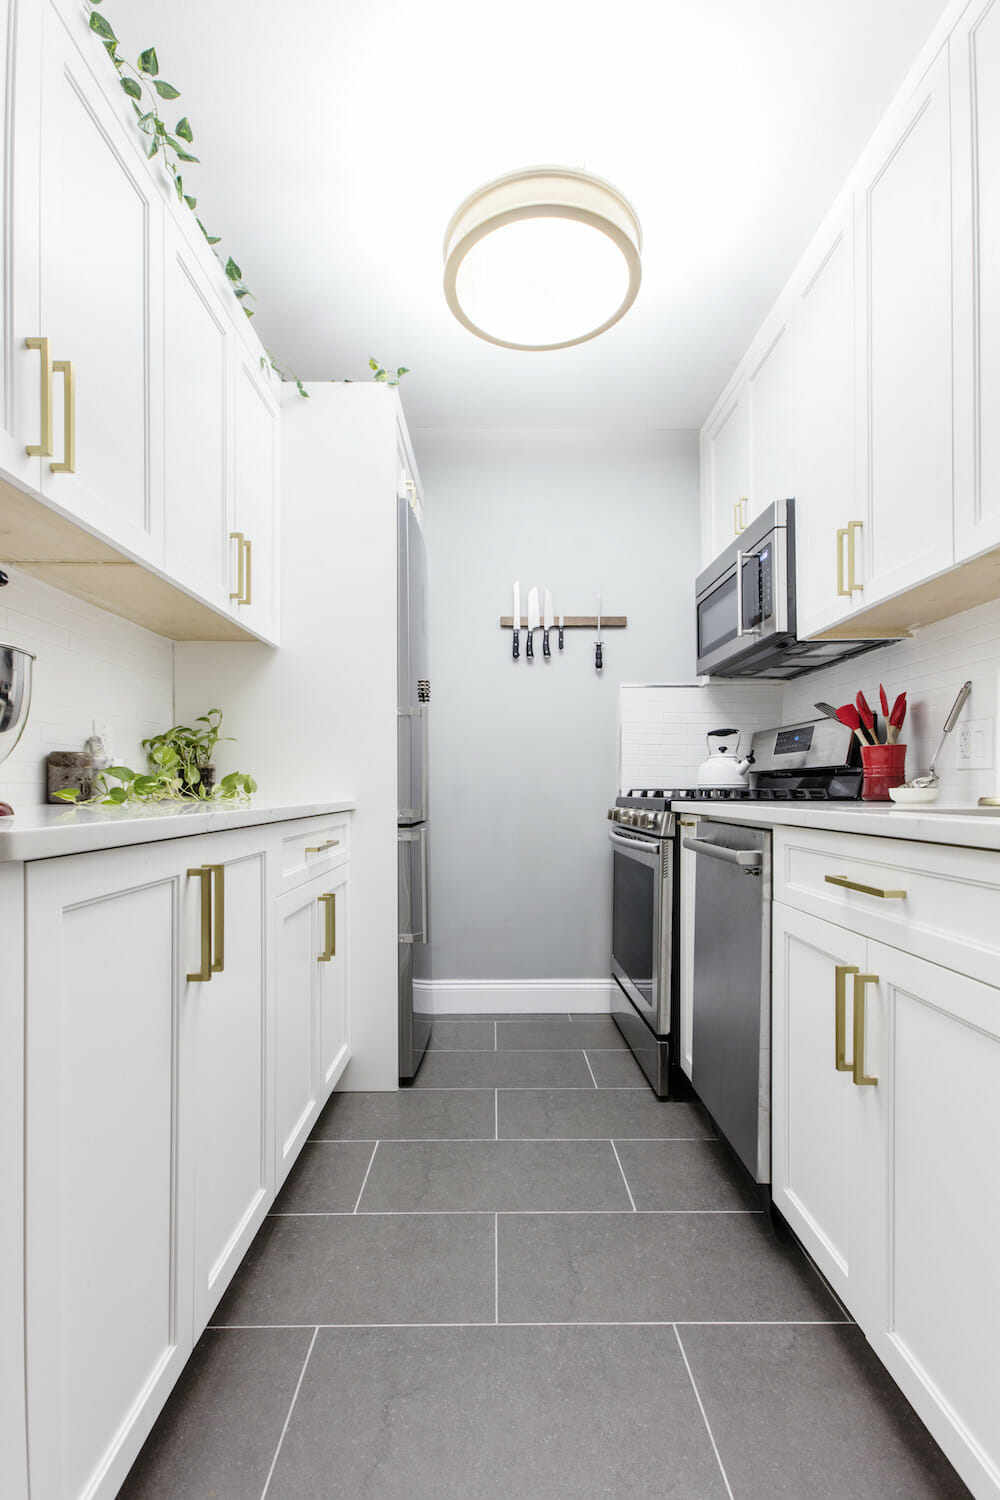 9 Space Enhancing Ideas For Your Galley Kitchen Remodel In 2020 Galley Kitchen Remodel Galley Kitchen Layout Galley Kitchen Renovation